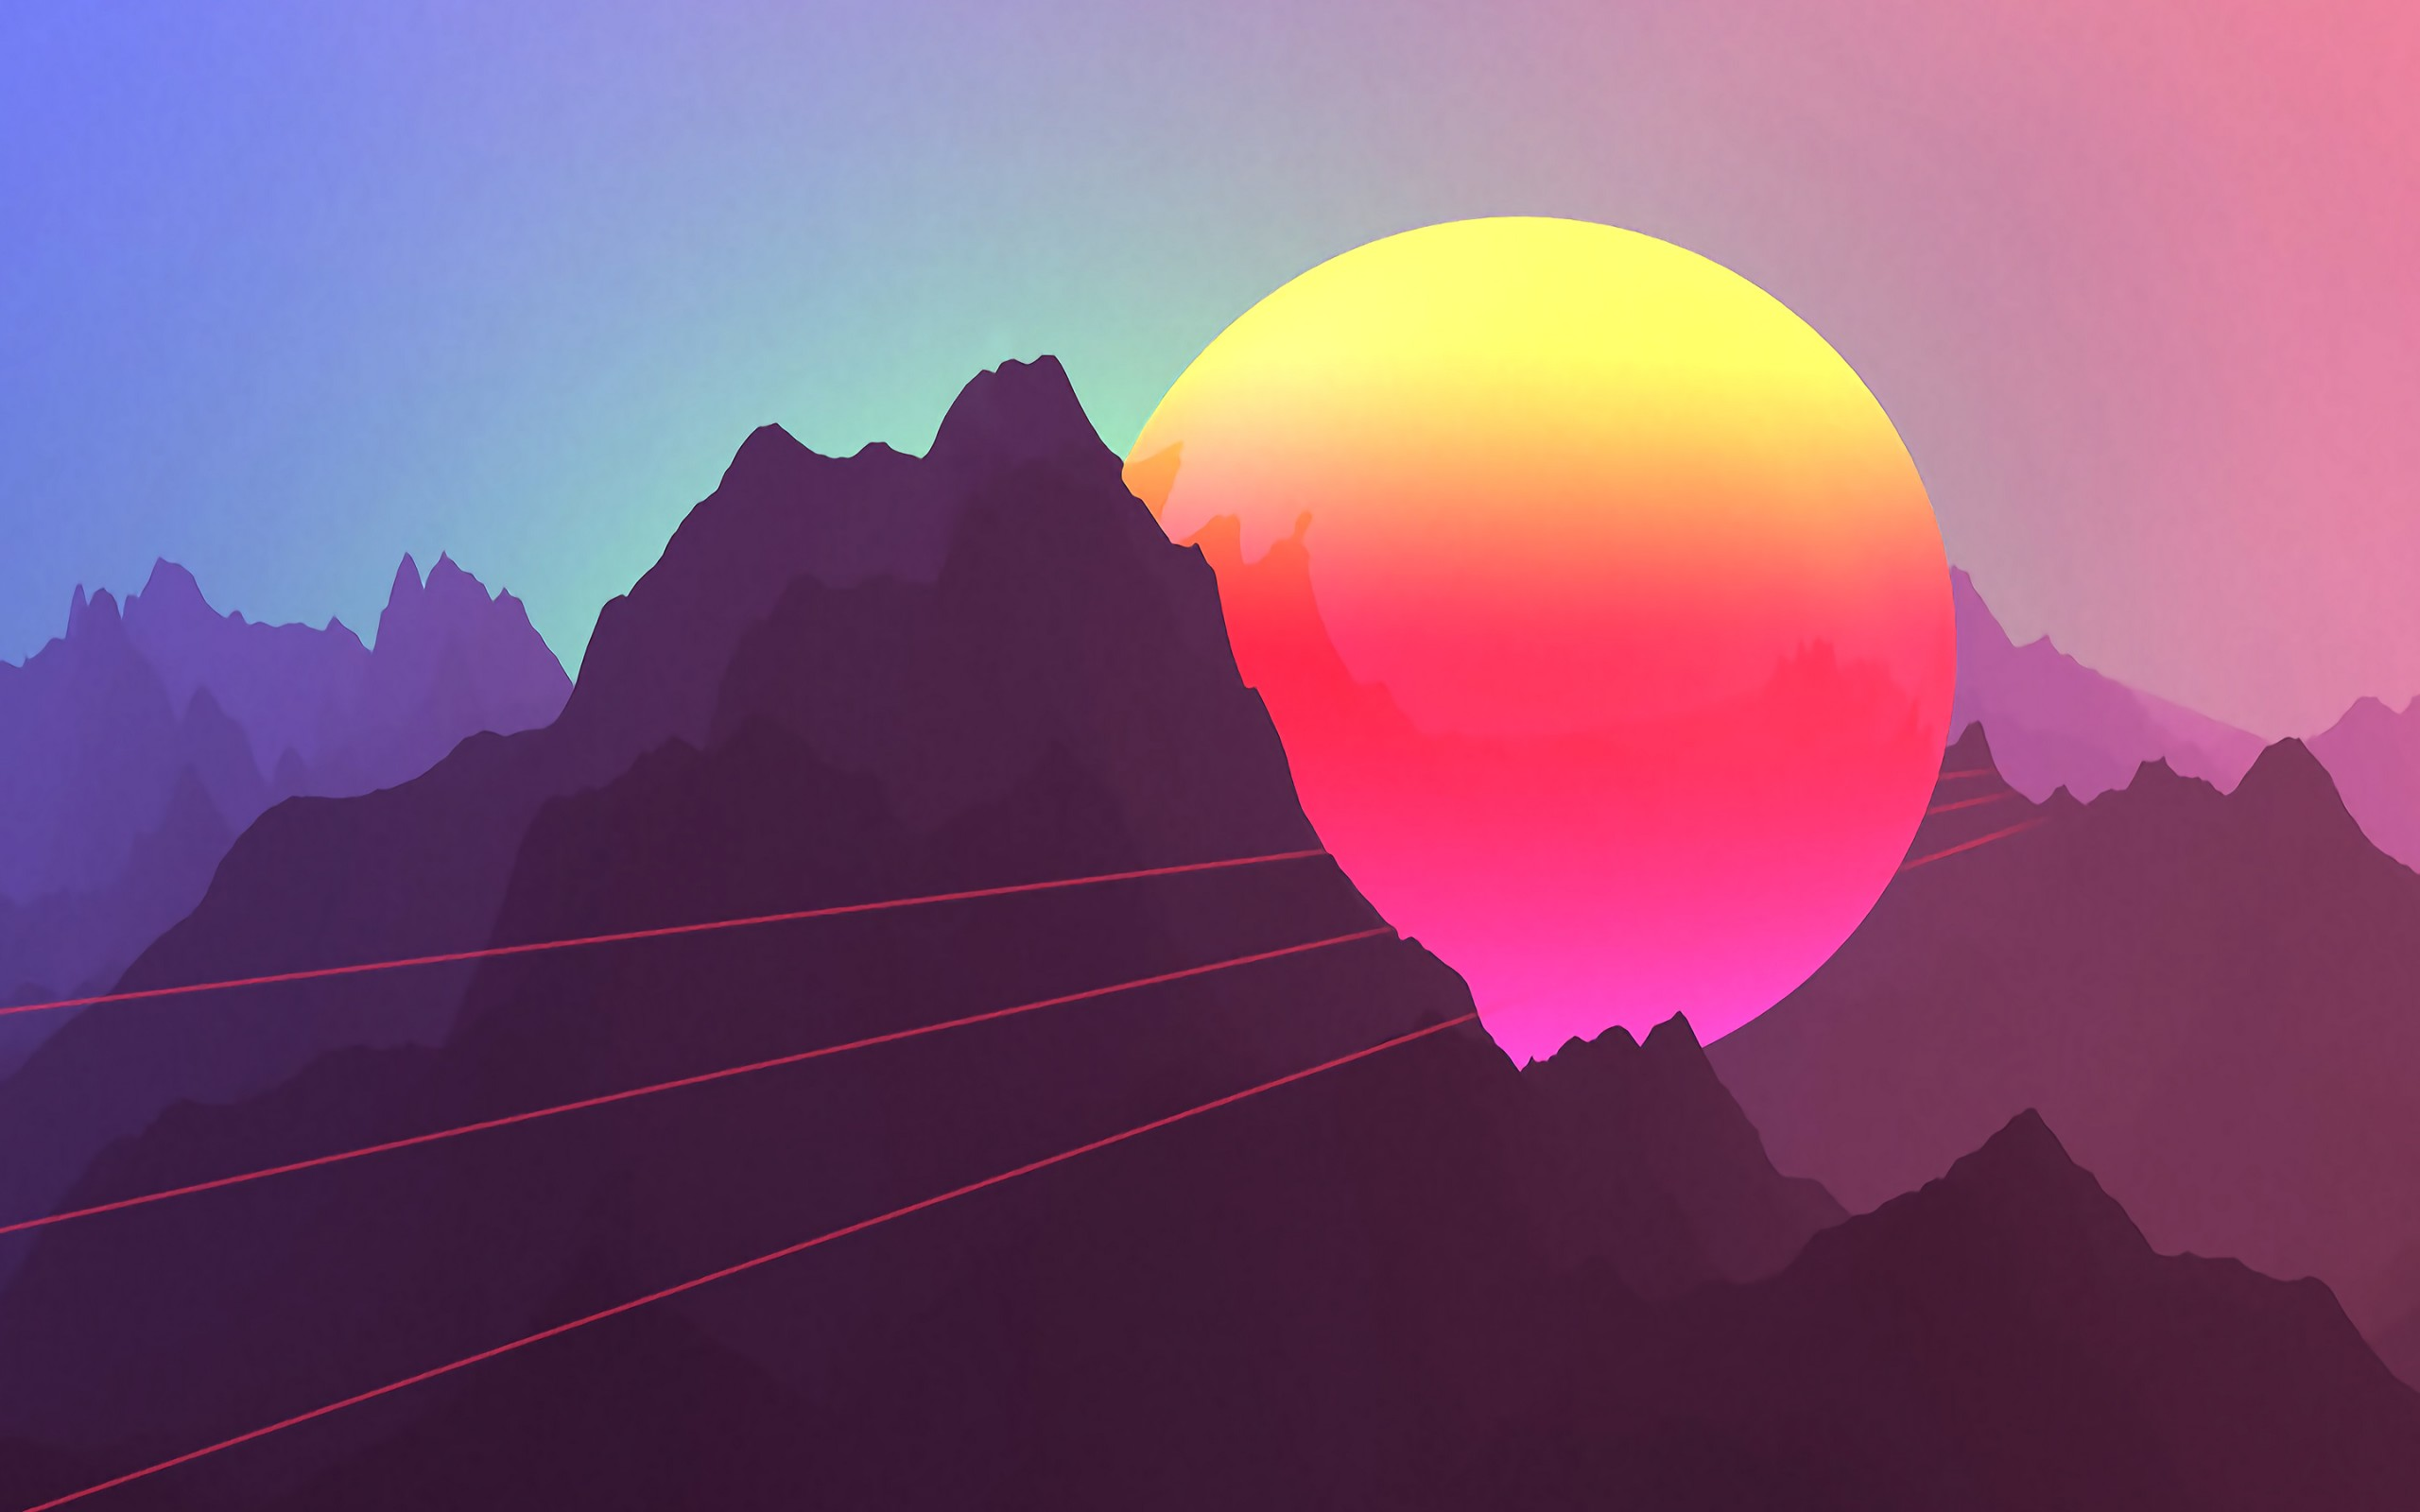 "neon sunset mountains 13"" retina macbook pro - hd wallpaper"